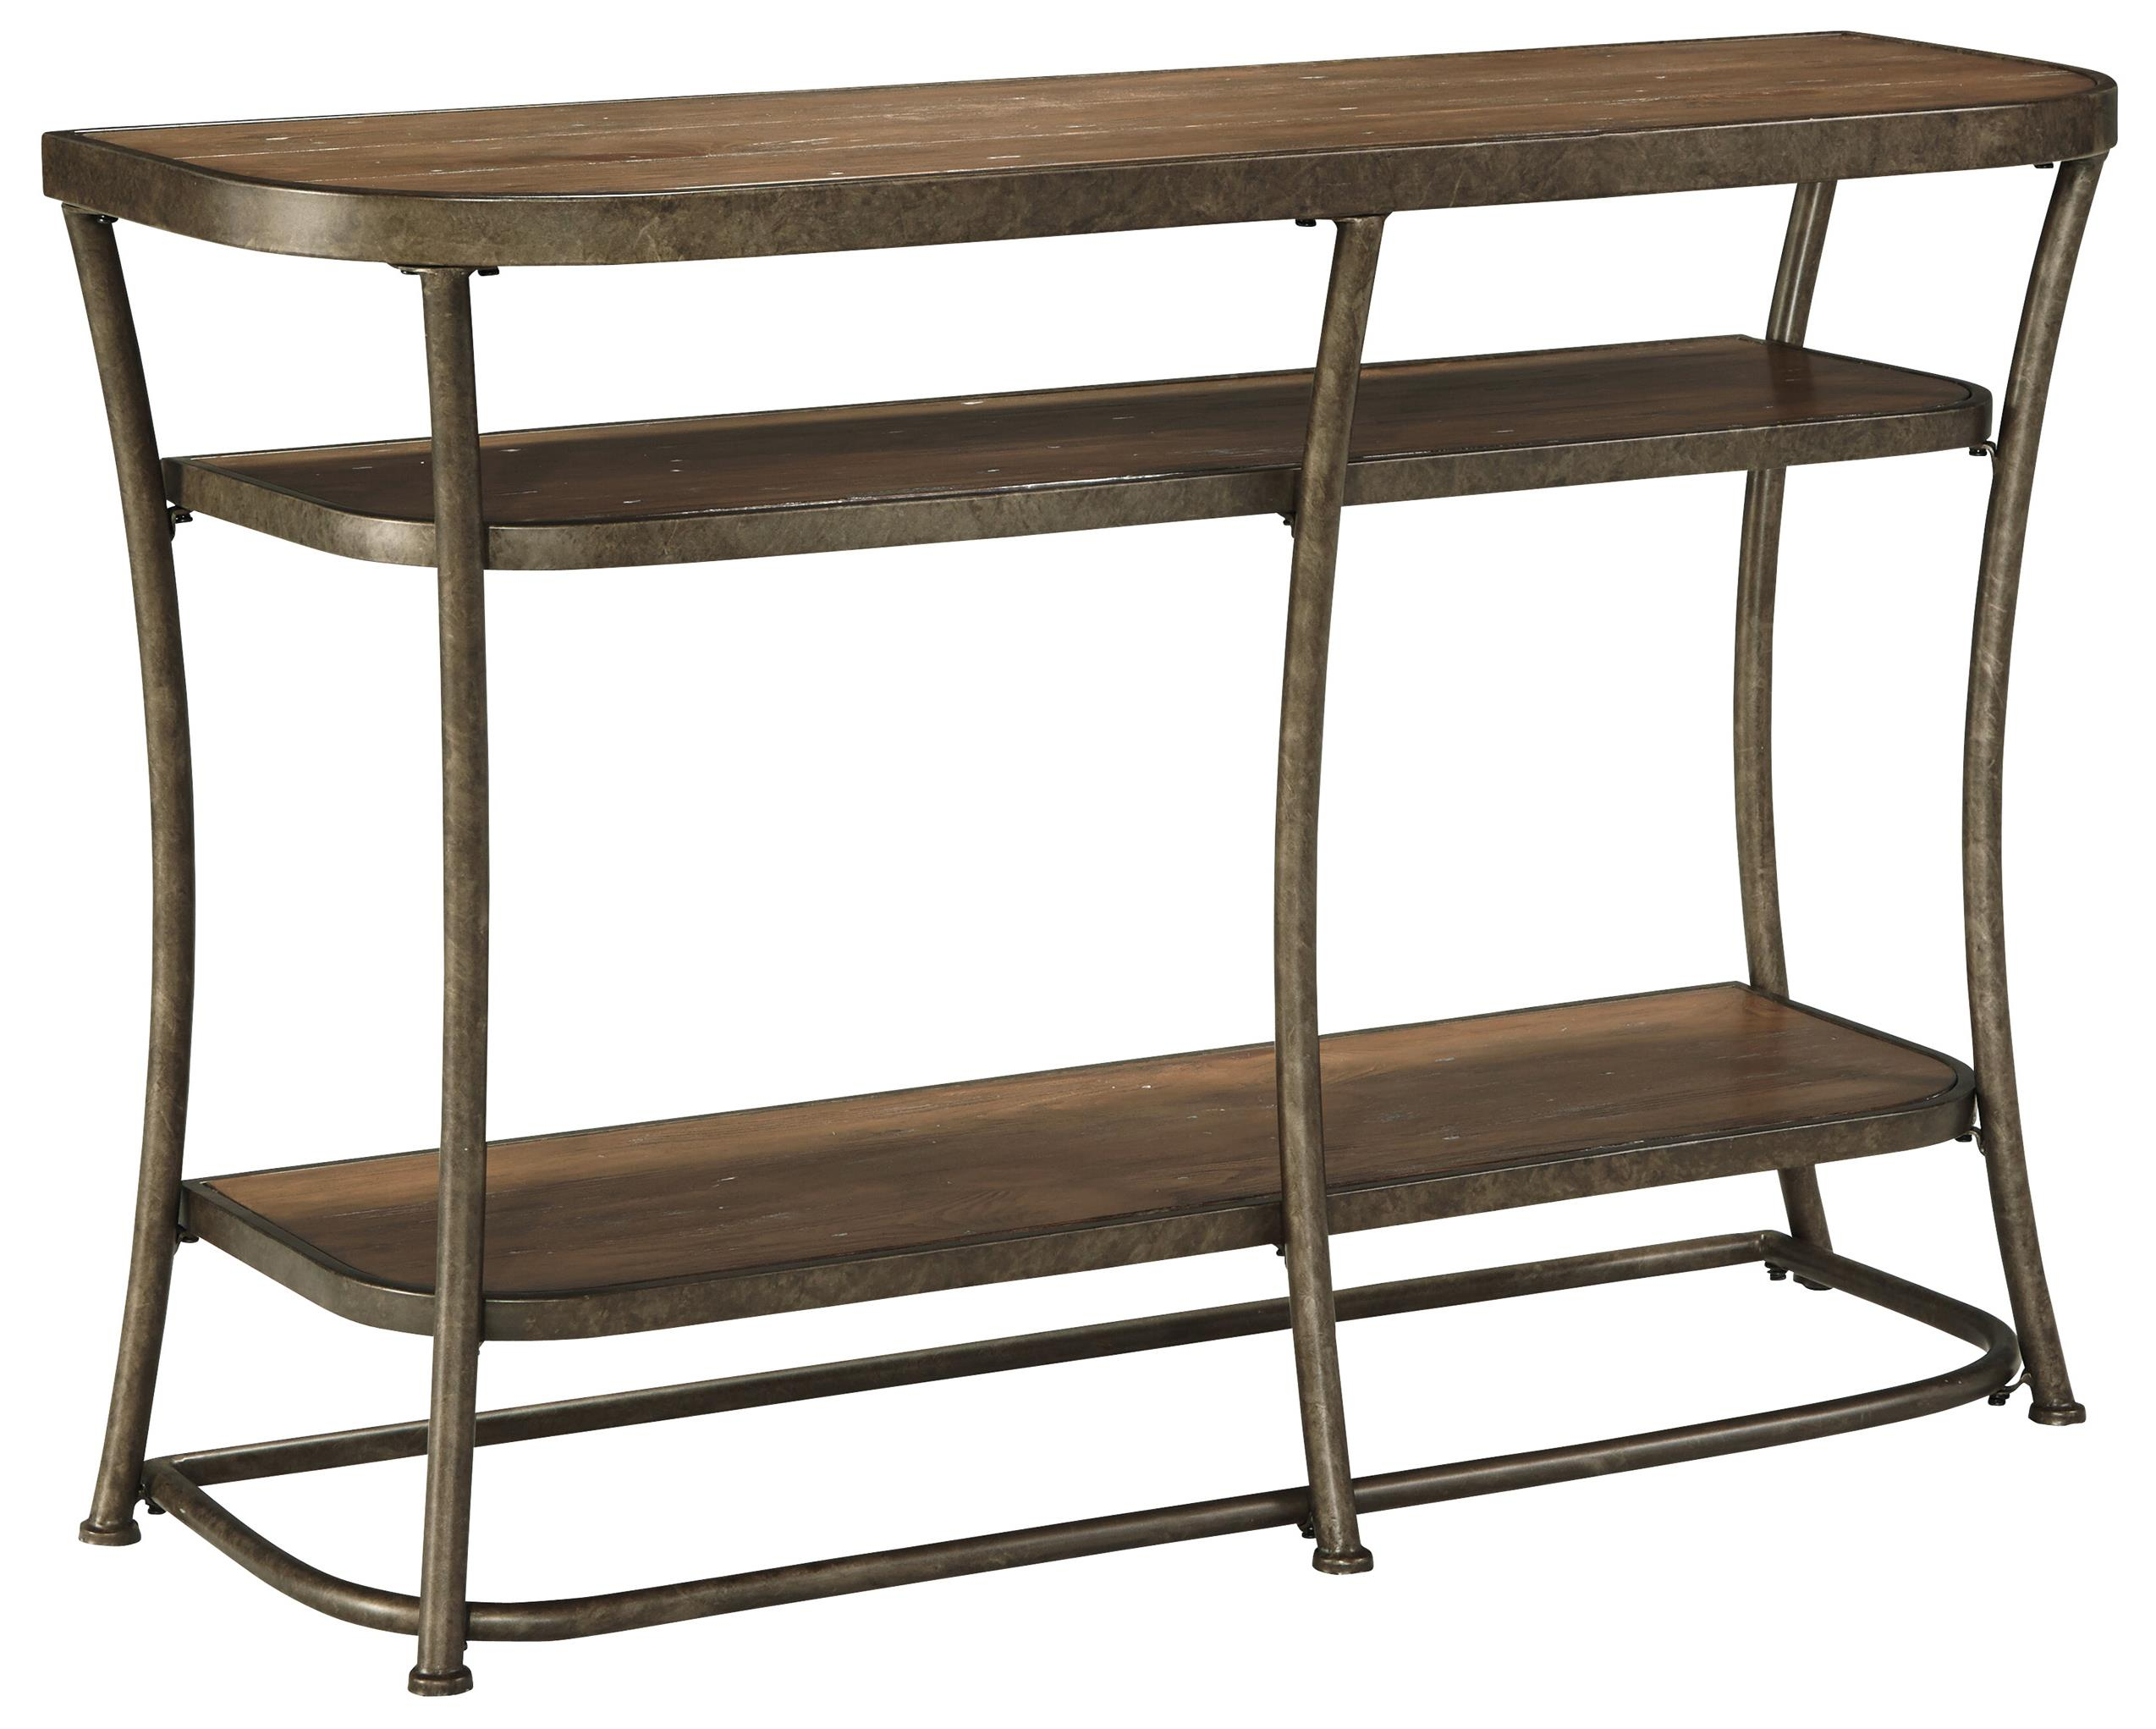 Signature Designashley Nartina T805 4 Rustic Metal Frame Sofa For Frame Console Tables (View 24 of 30)